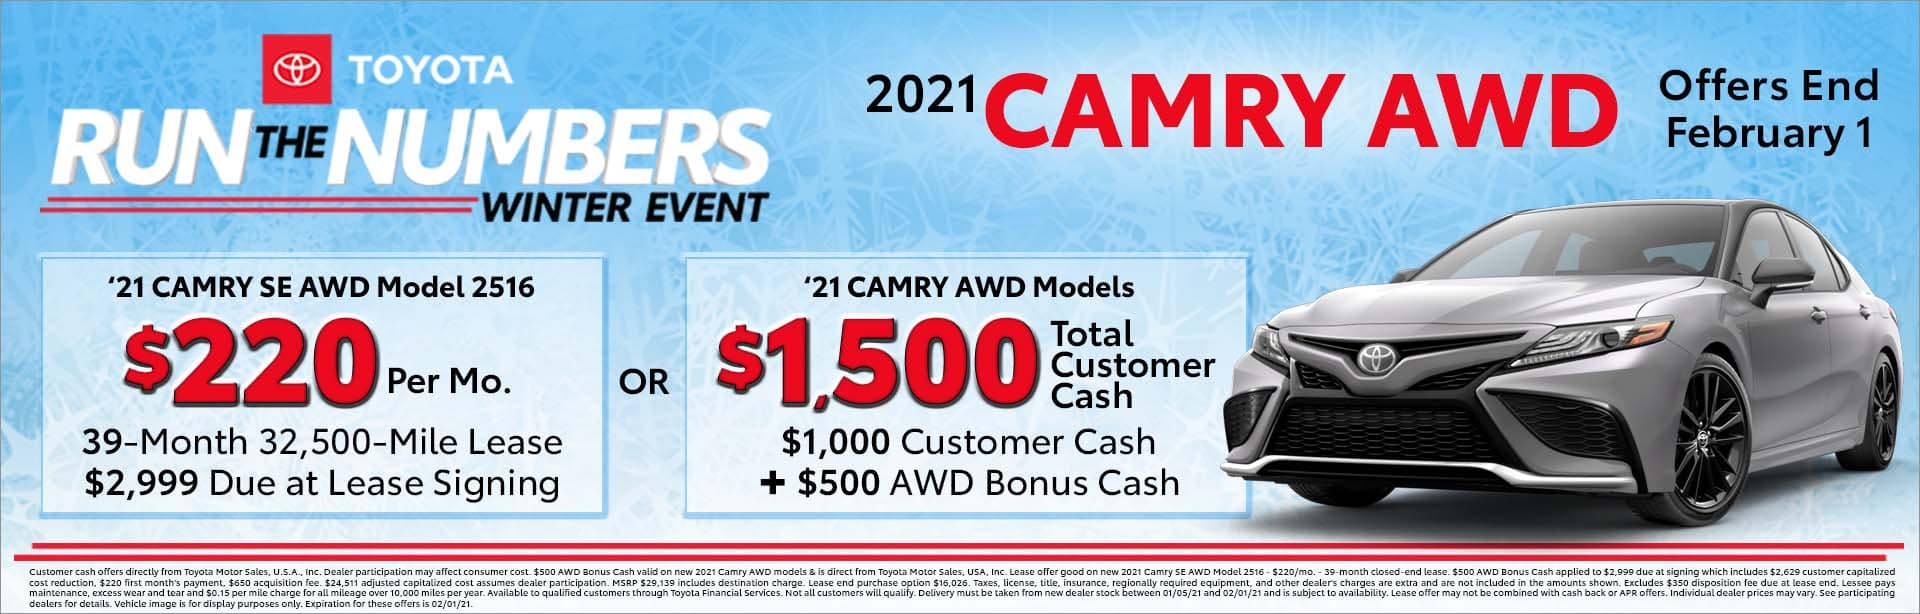 camry 2021 awd offers